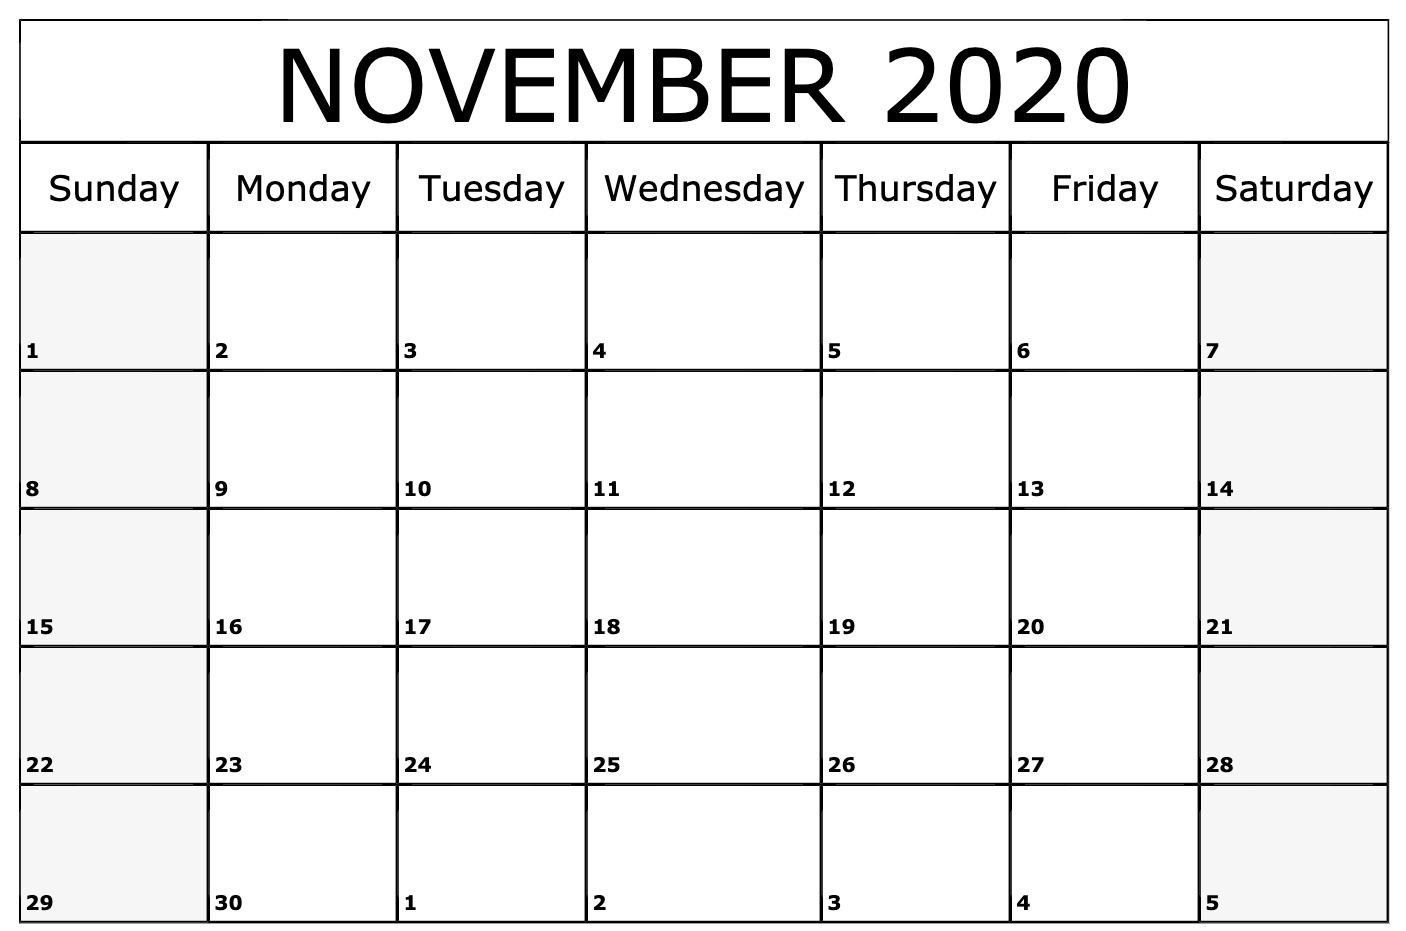 November 2020 Calendar Printable Template | Monthly  Novemner 2020 Full Page Calander Template